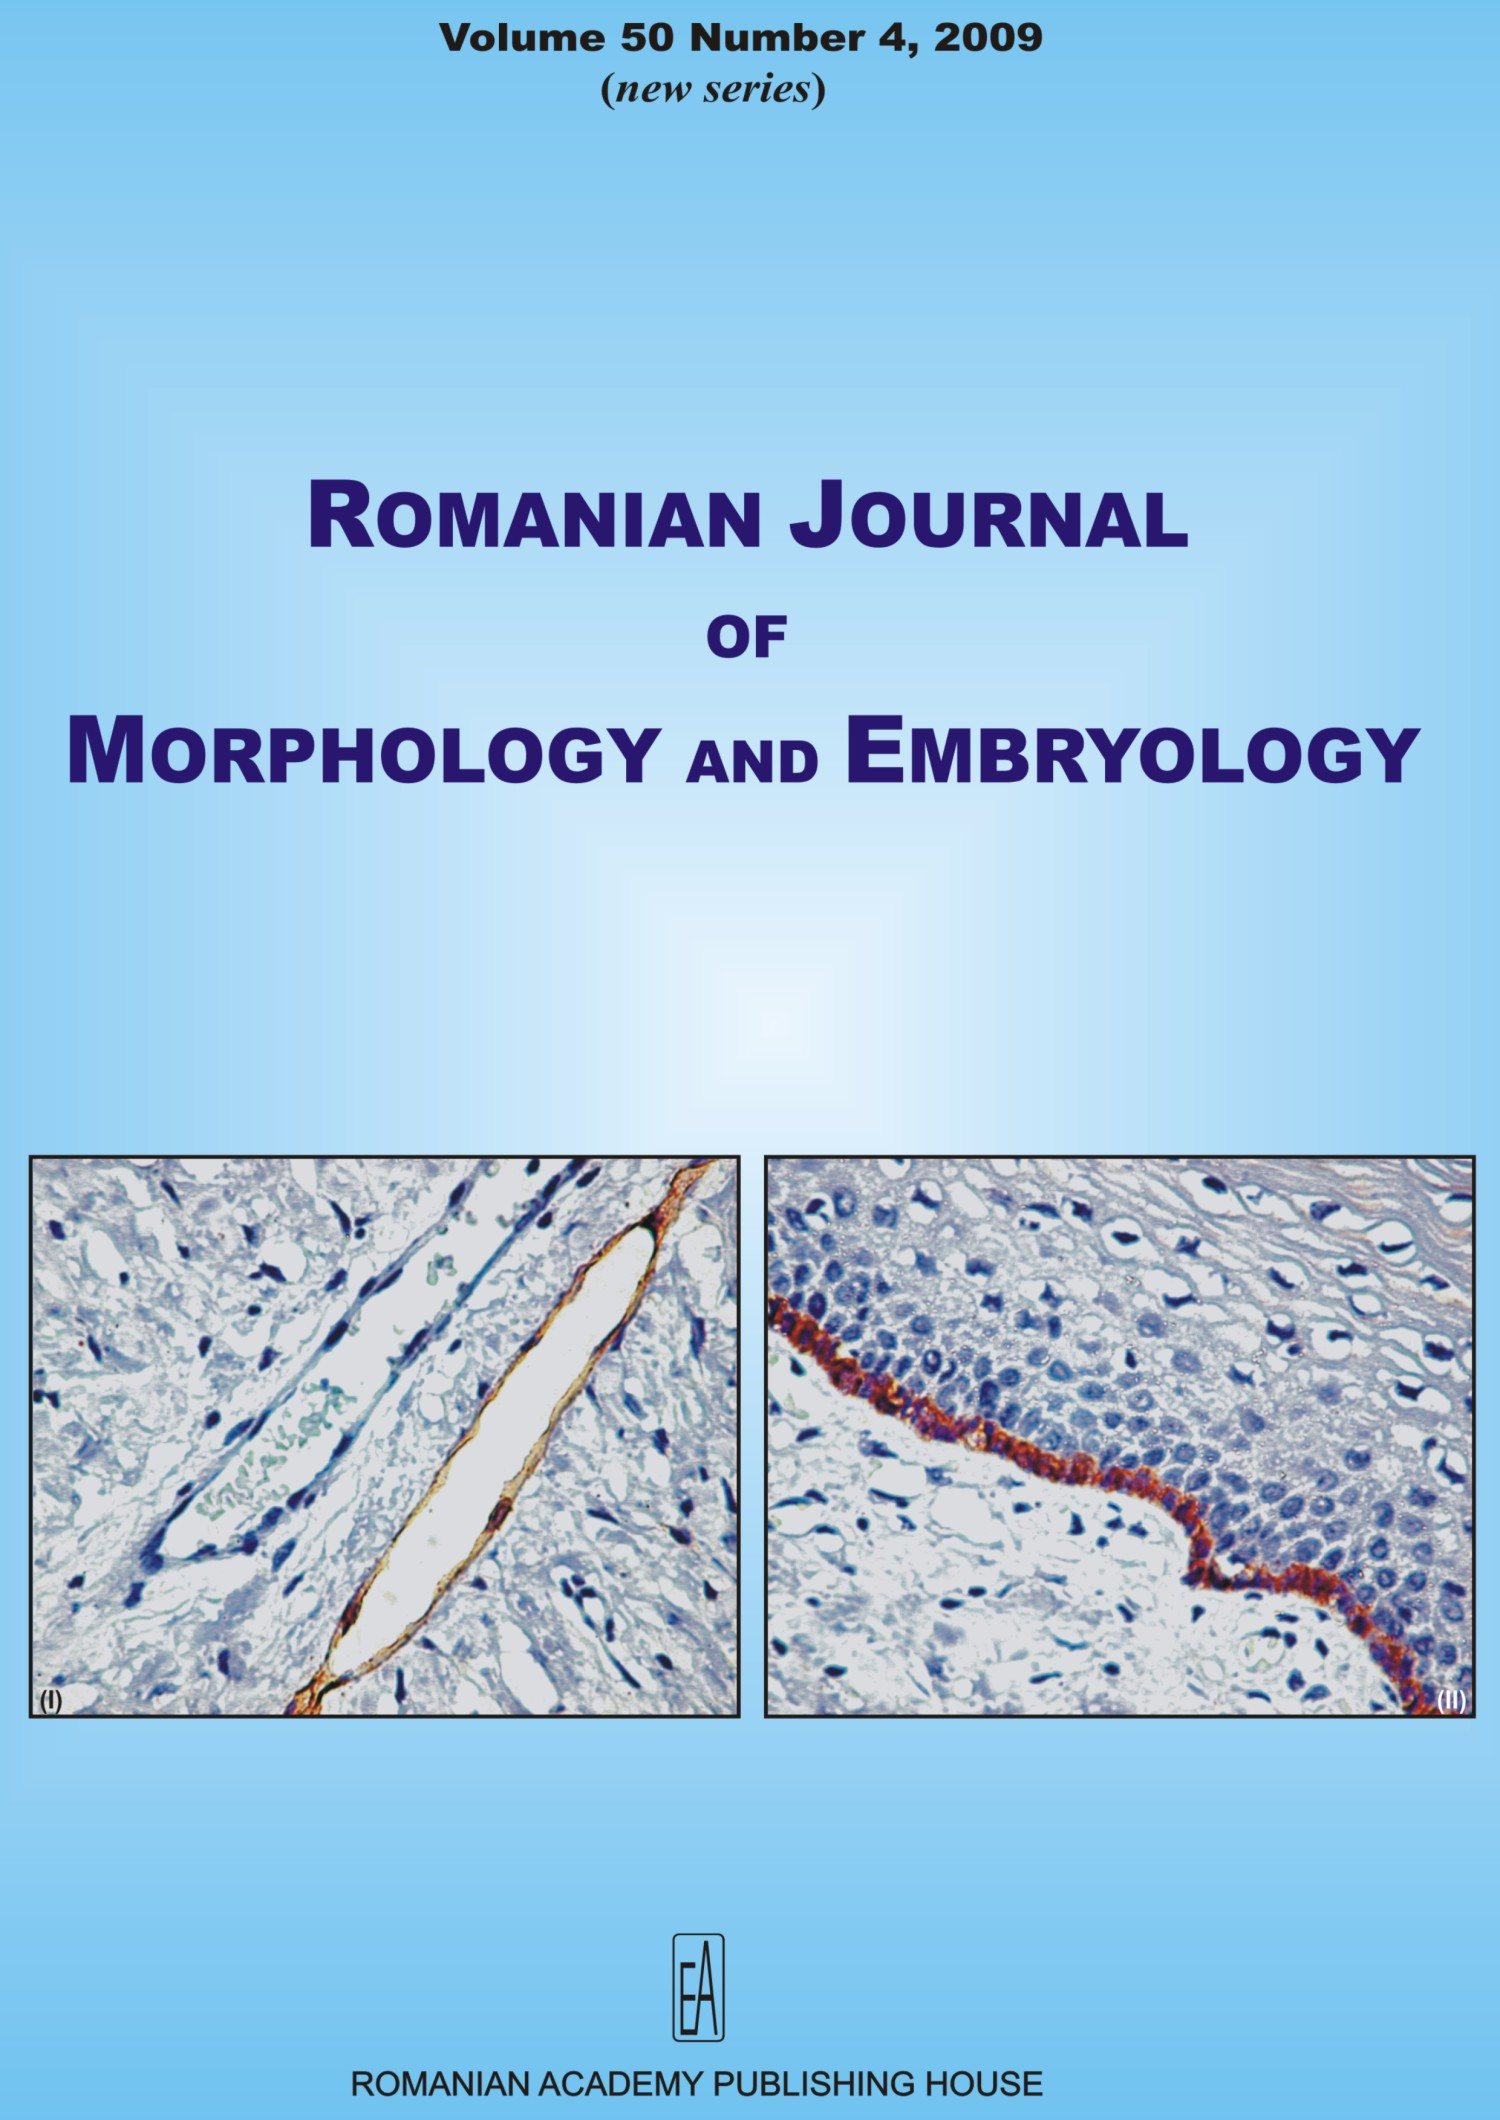 Romanian Journal of Morphology and Embryology, vol. 50 no. 4, 2009